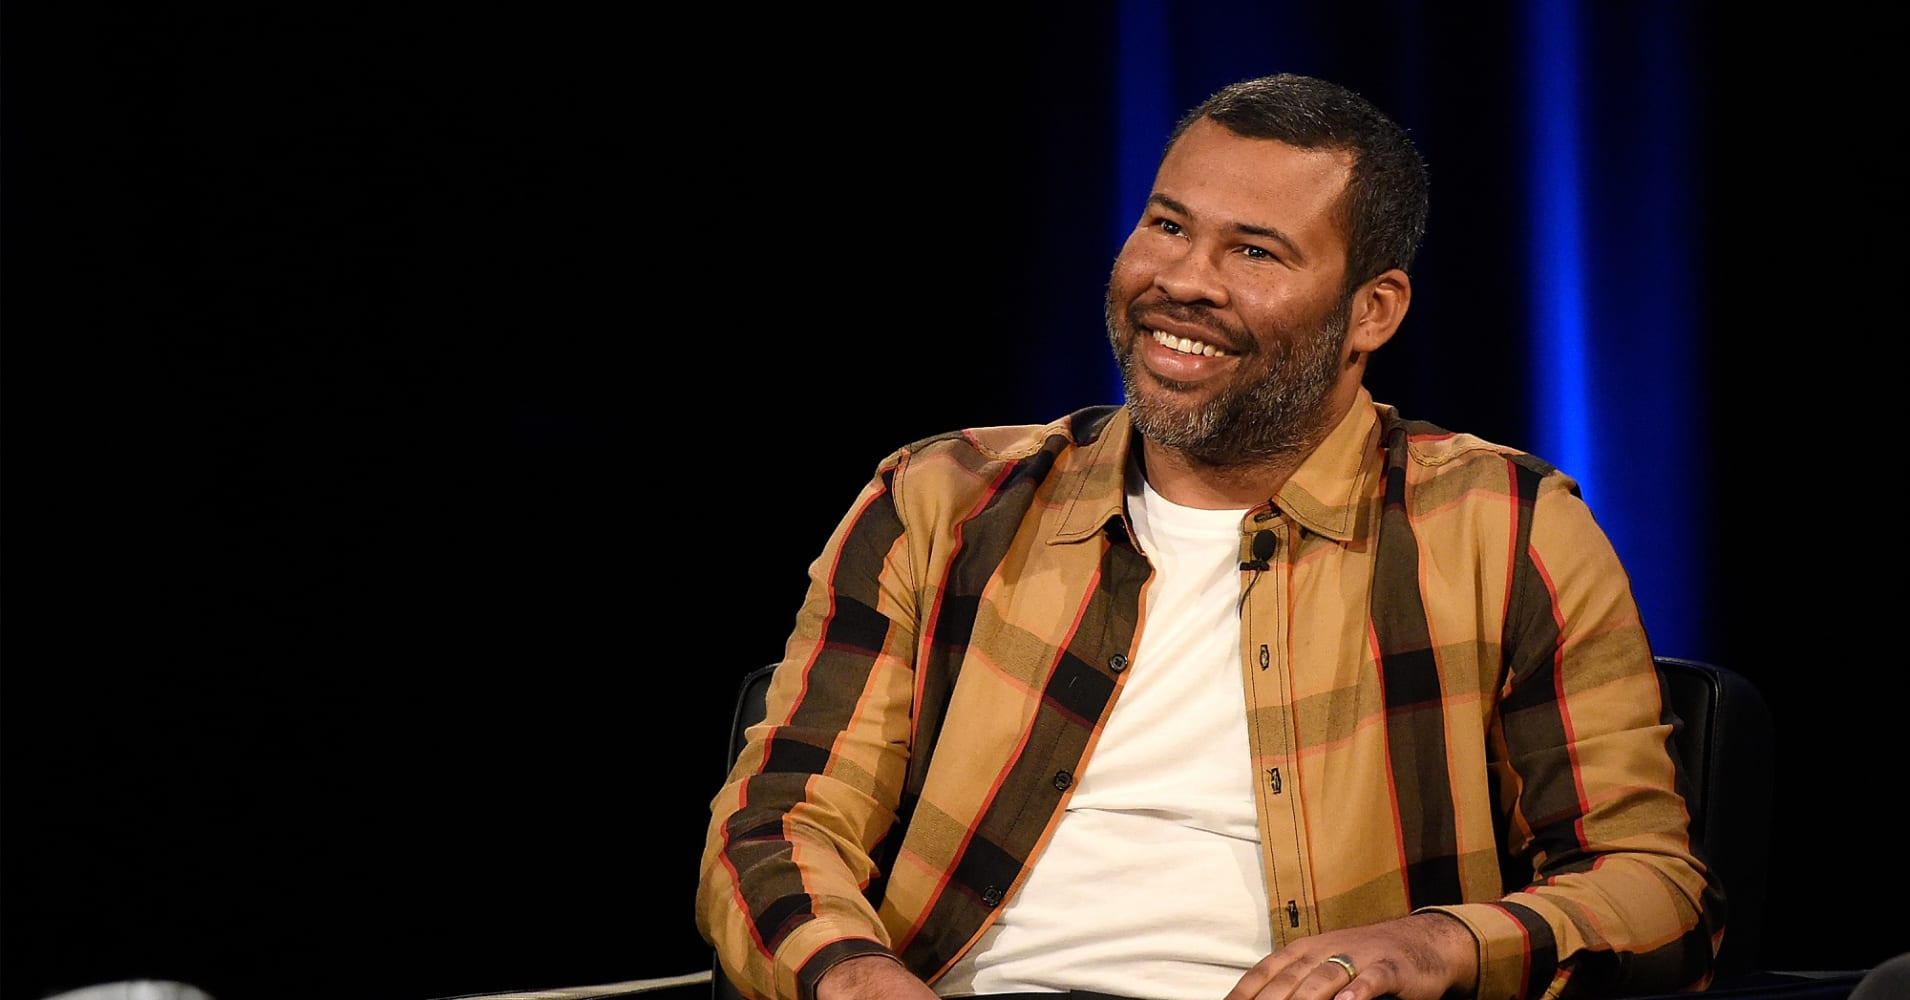 Jordan Peele's Reaction To Winning An Oscar Is So Relatable